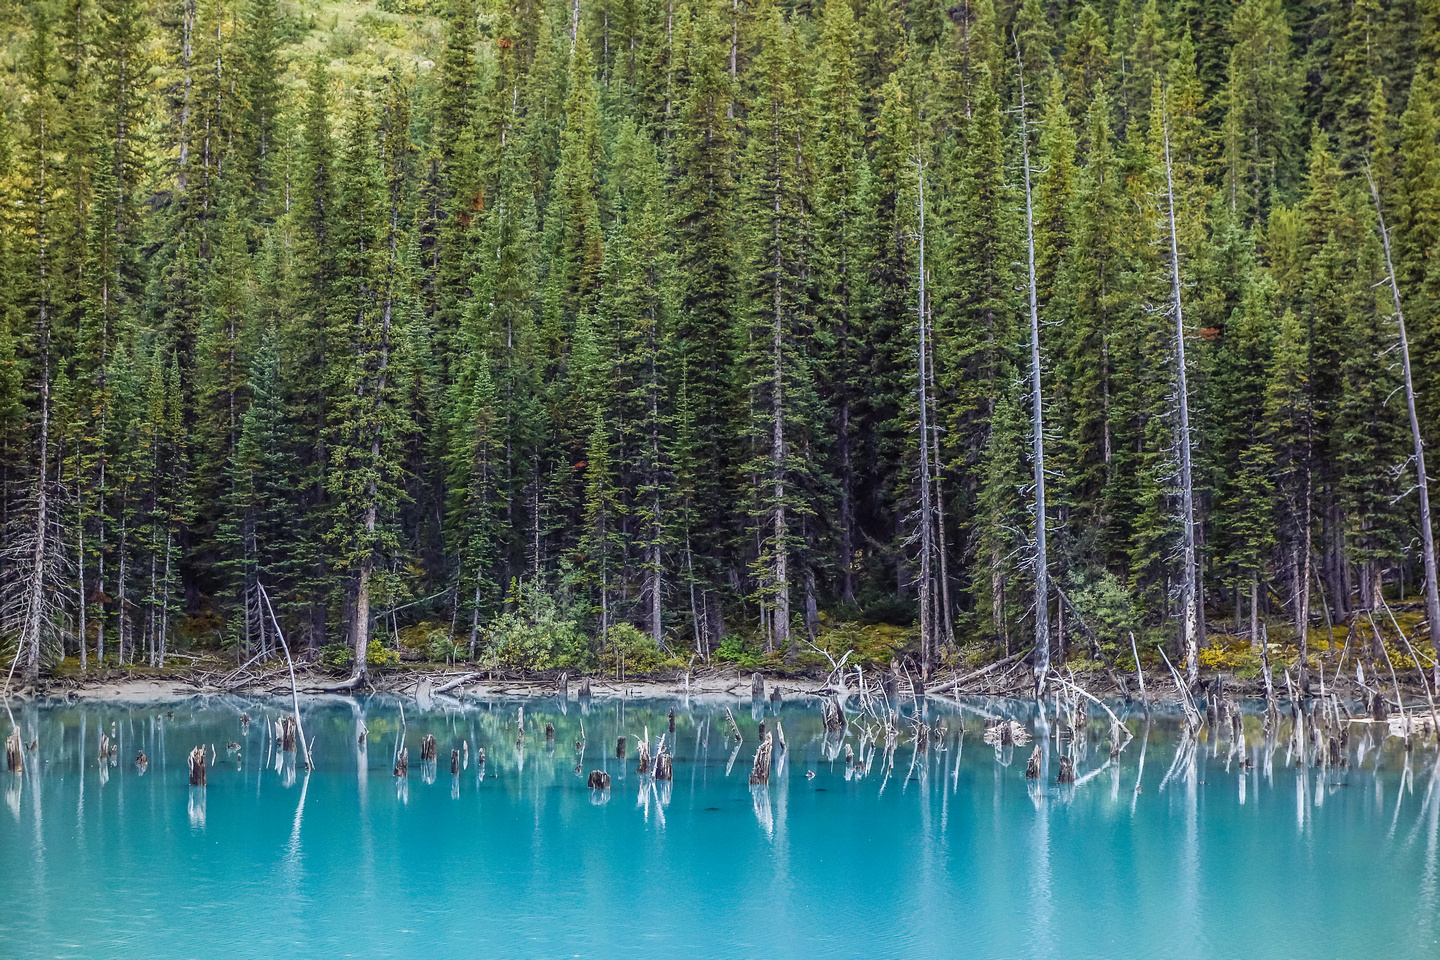 Interesting colors and terrain at the tiny lake.